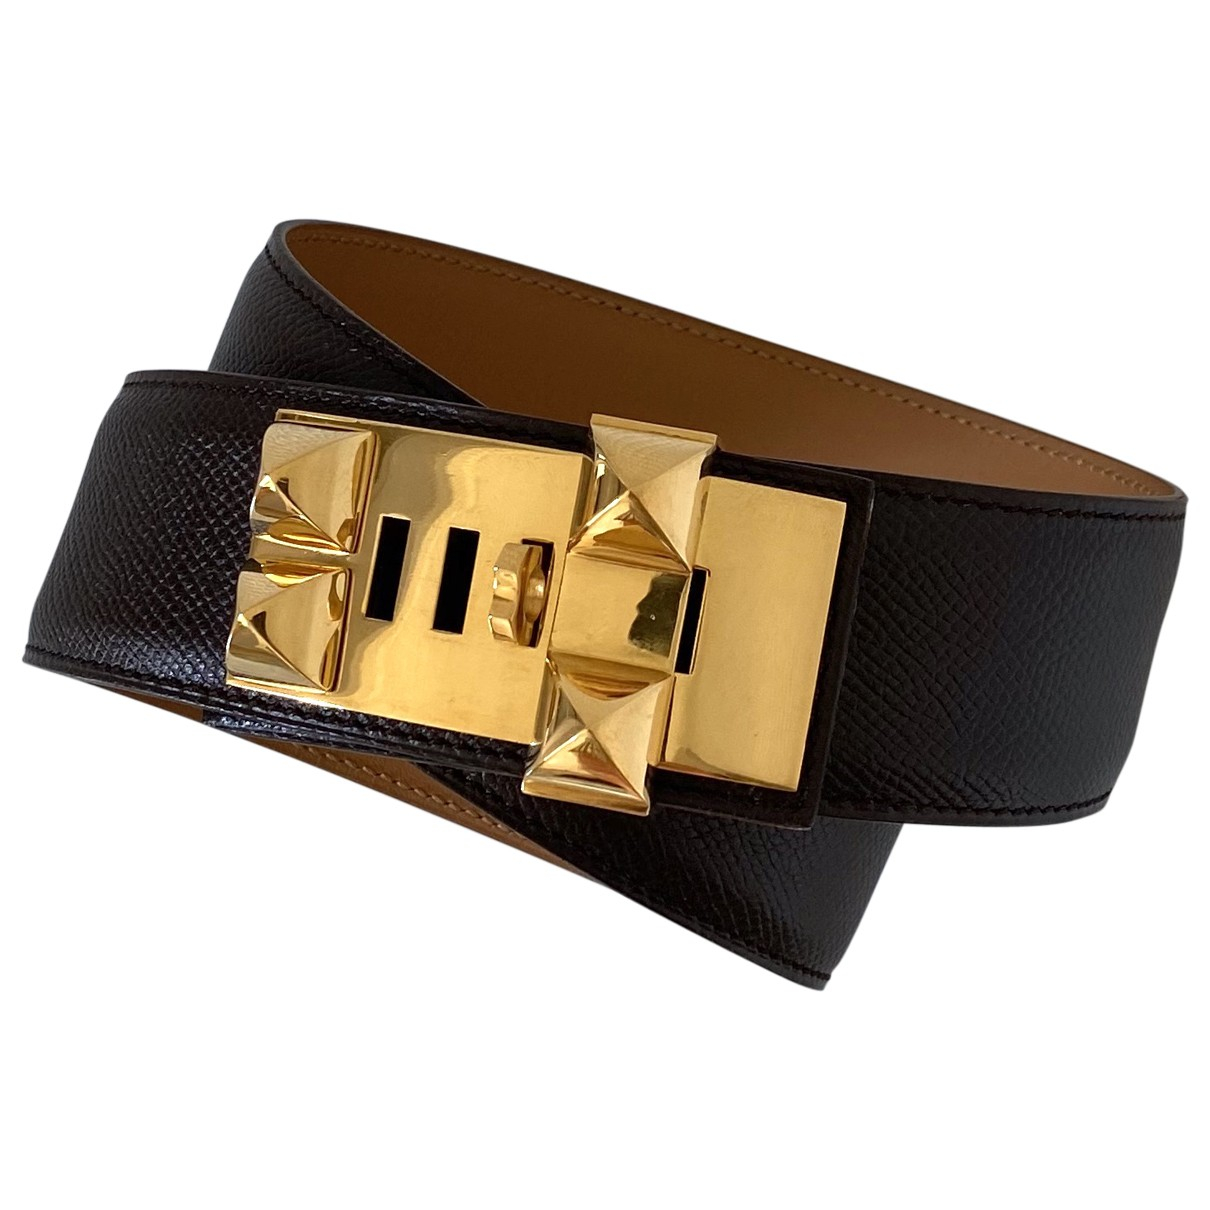 Hermès Collier de chien Brown Leather belt for Women 70 cm